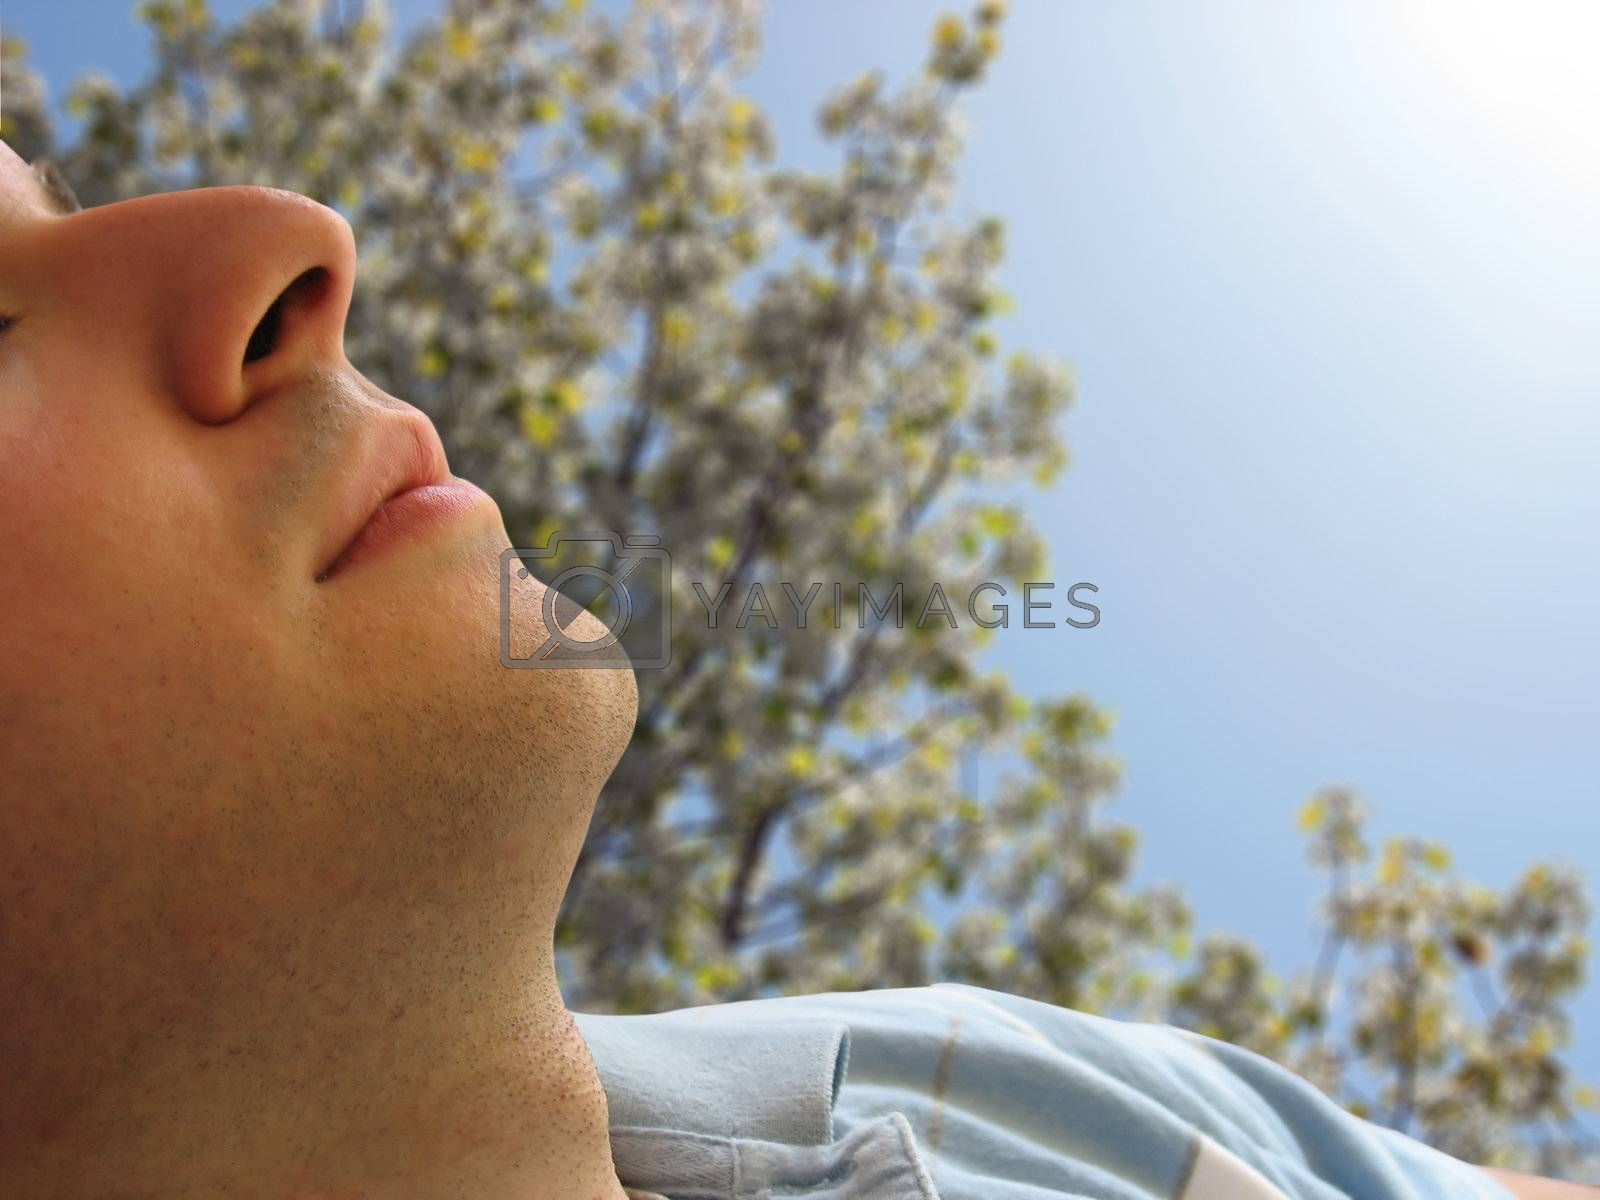 Shot of a man that looks to be sleeping - includes clipping path.